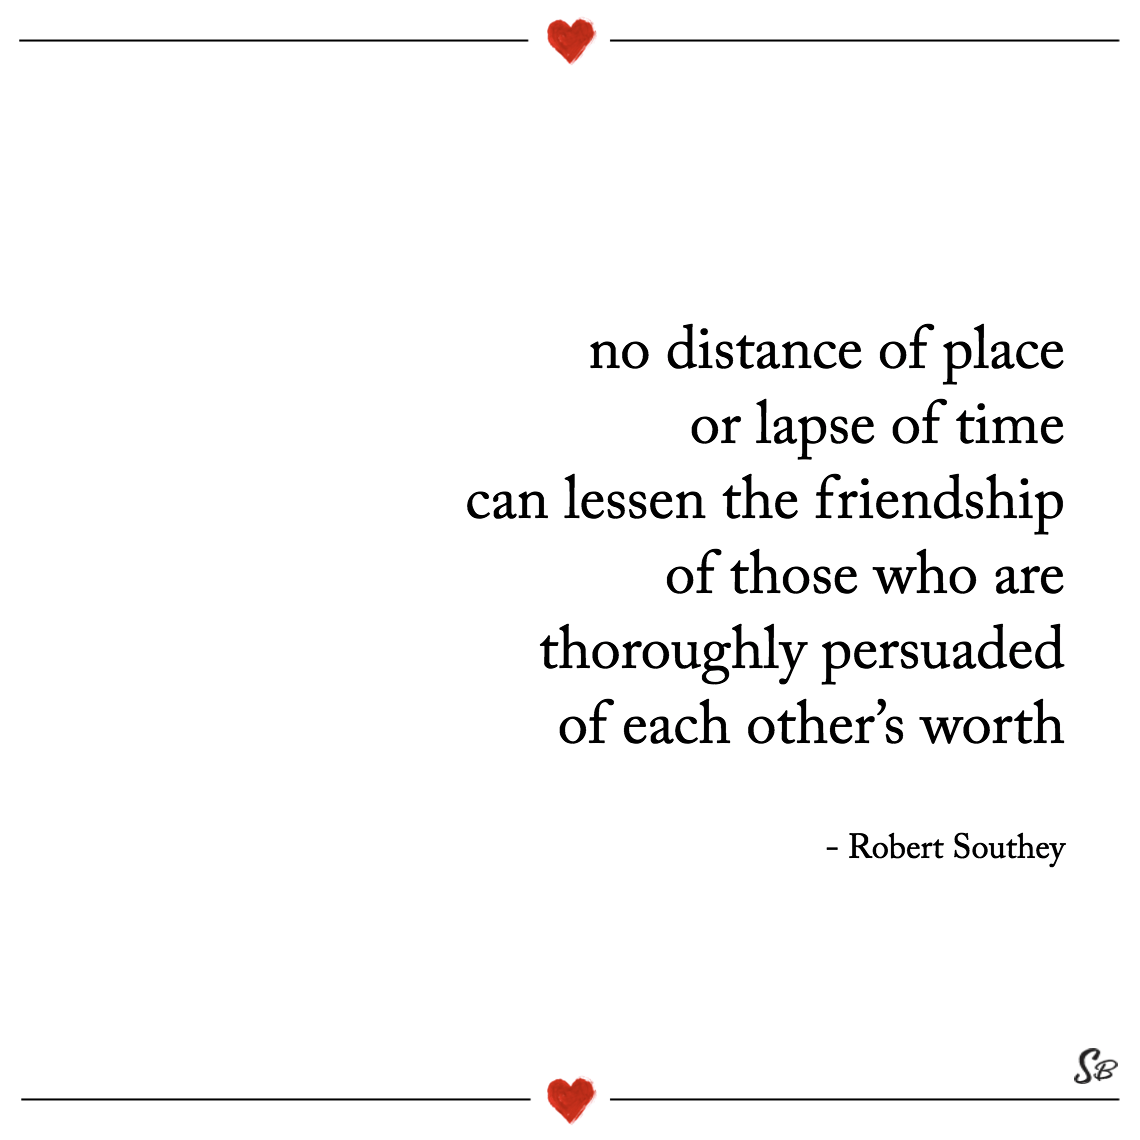 No distance of place or lapse of time can lessen the friendship of those who are thoroughly persuaded of each other's worth robert southey